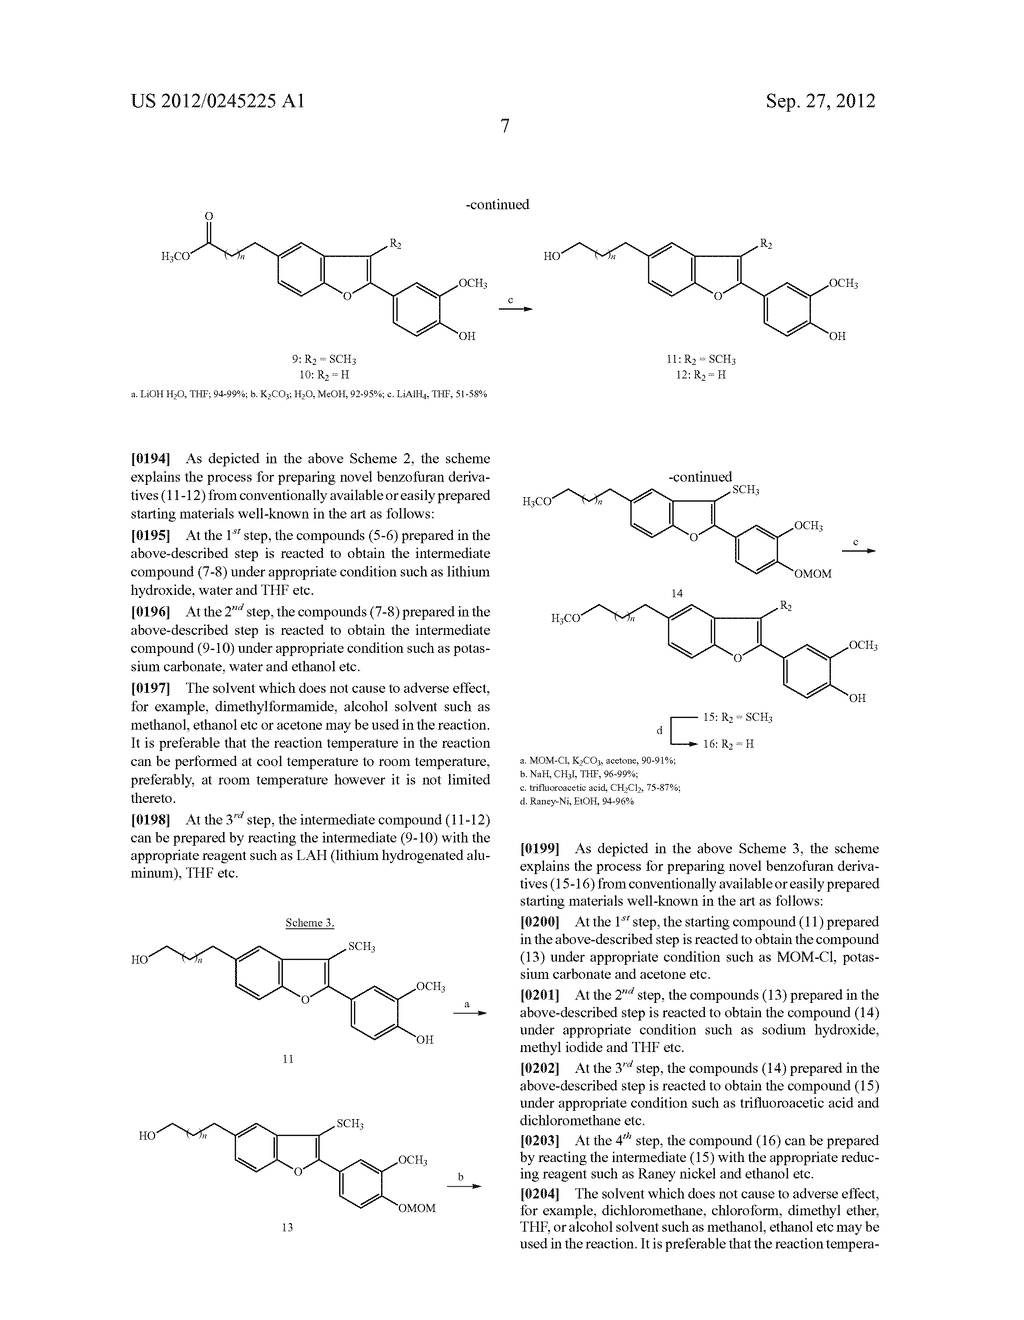 NOVEL BENZOFURAN TYPE DERIVATIVES, A COMPOSITION COMPRISING THE SAME FOR     TREATING OR PREVENTING COGNITIVE DYSFUNCTION AND THE USE THEREOF - diagram, schematic, and image 23